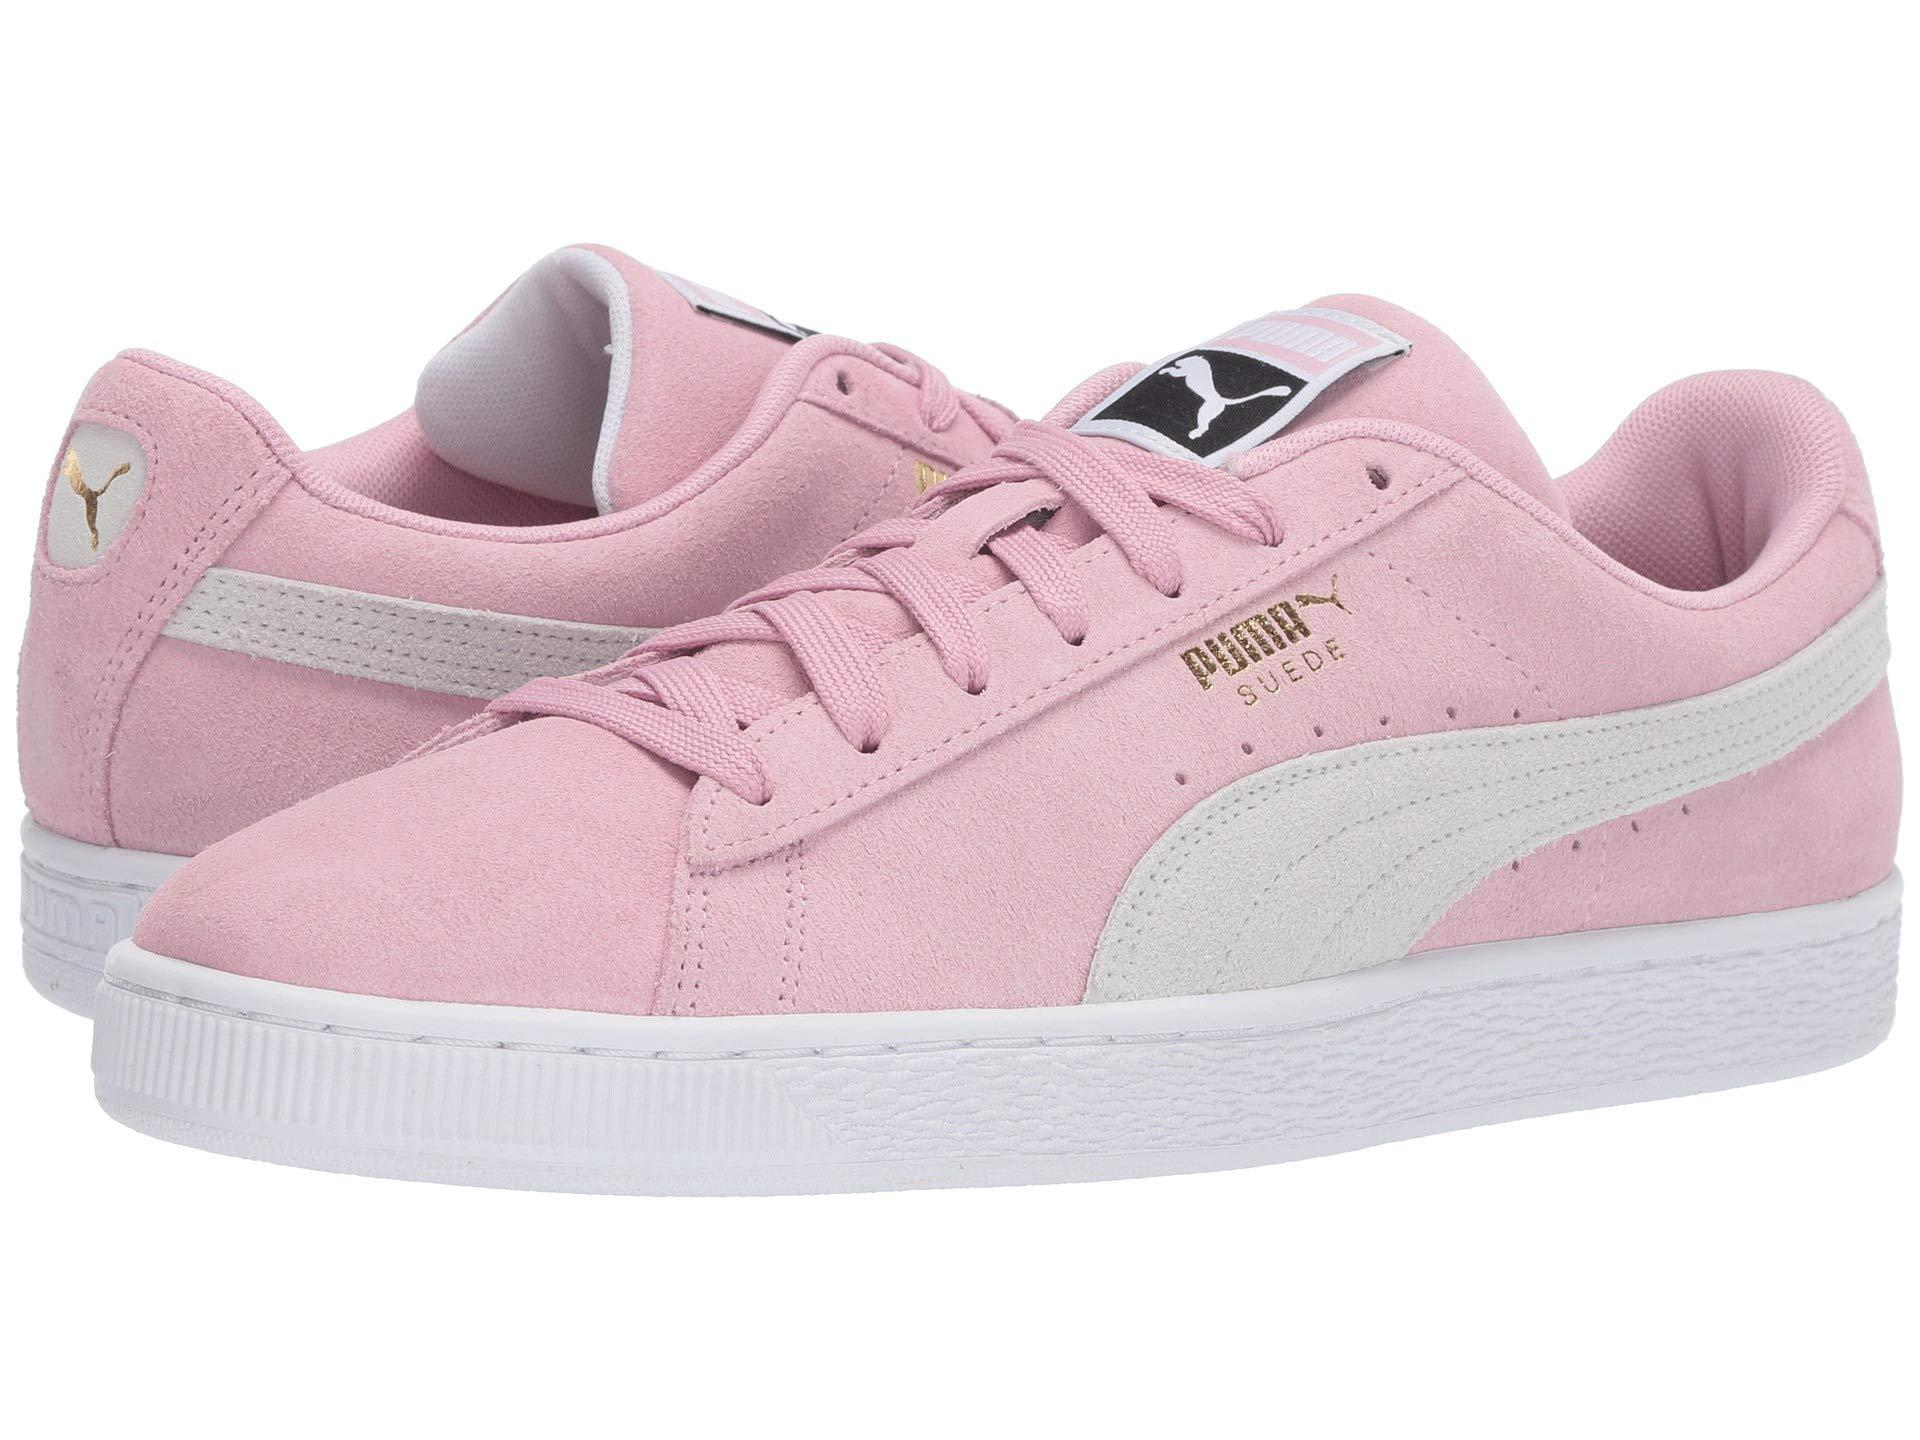 queso superficial Transeúnte  PUMA Suede Classic in Pink for Men - Save 26% - Lyst